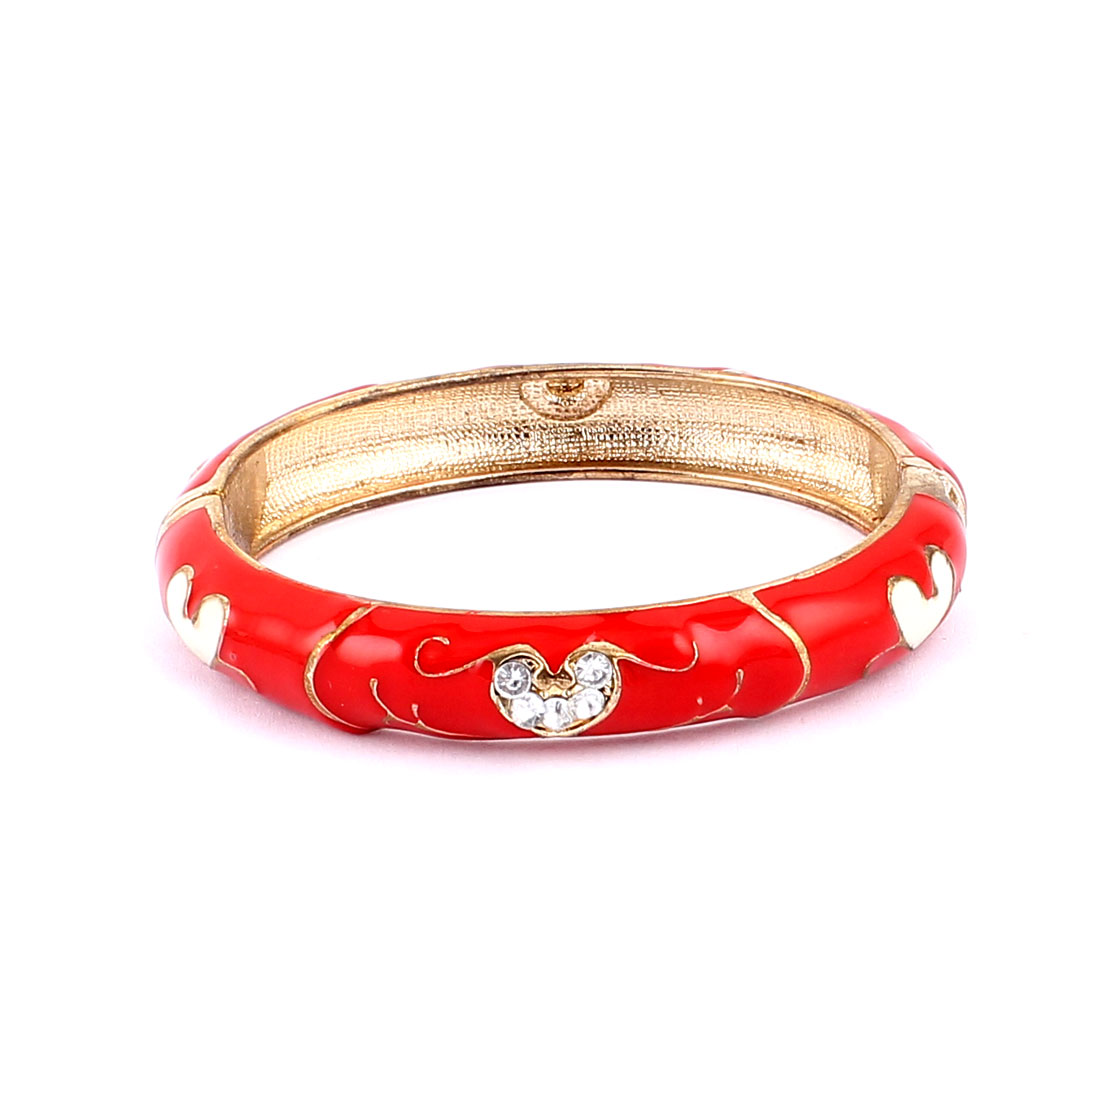 Woman Lady Jewelry Gift Oval Cuff Heart Carved Enamel Bracelet Bangle Red